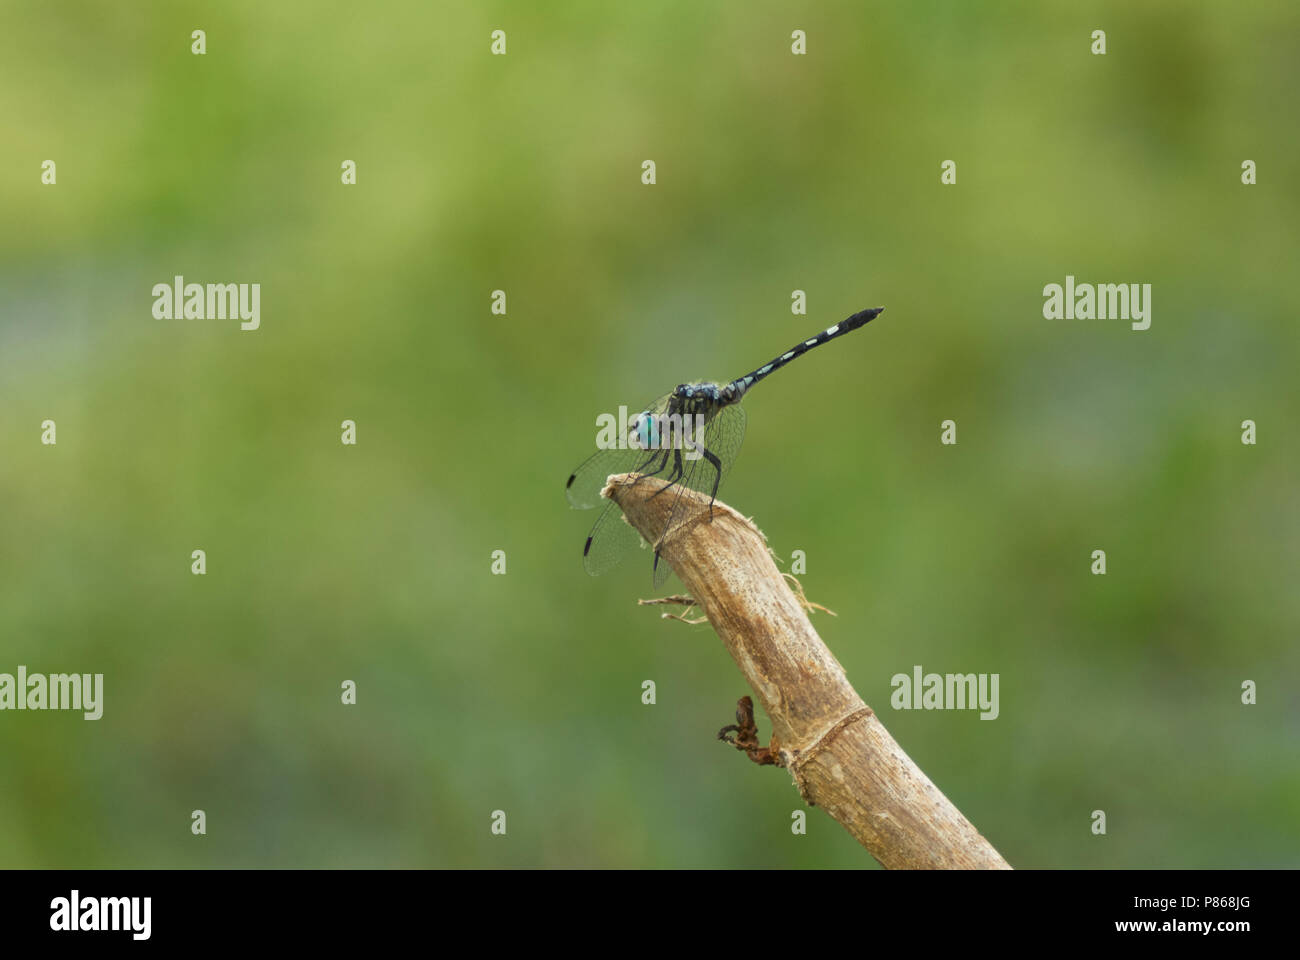 Dragonfly, somewhere in Calakmul Biosphere Reserve, Yucatan peninsula, Campeche, Mexico. Stock Photo